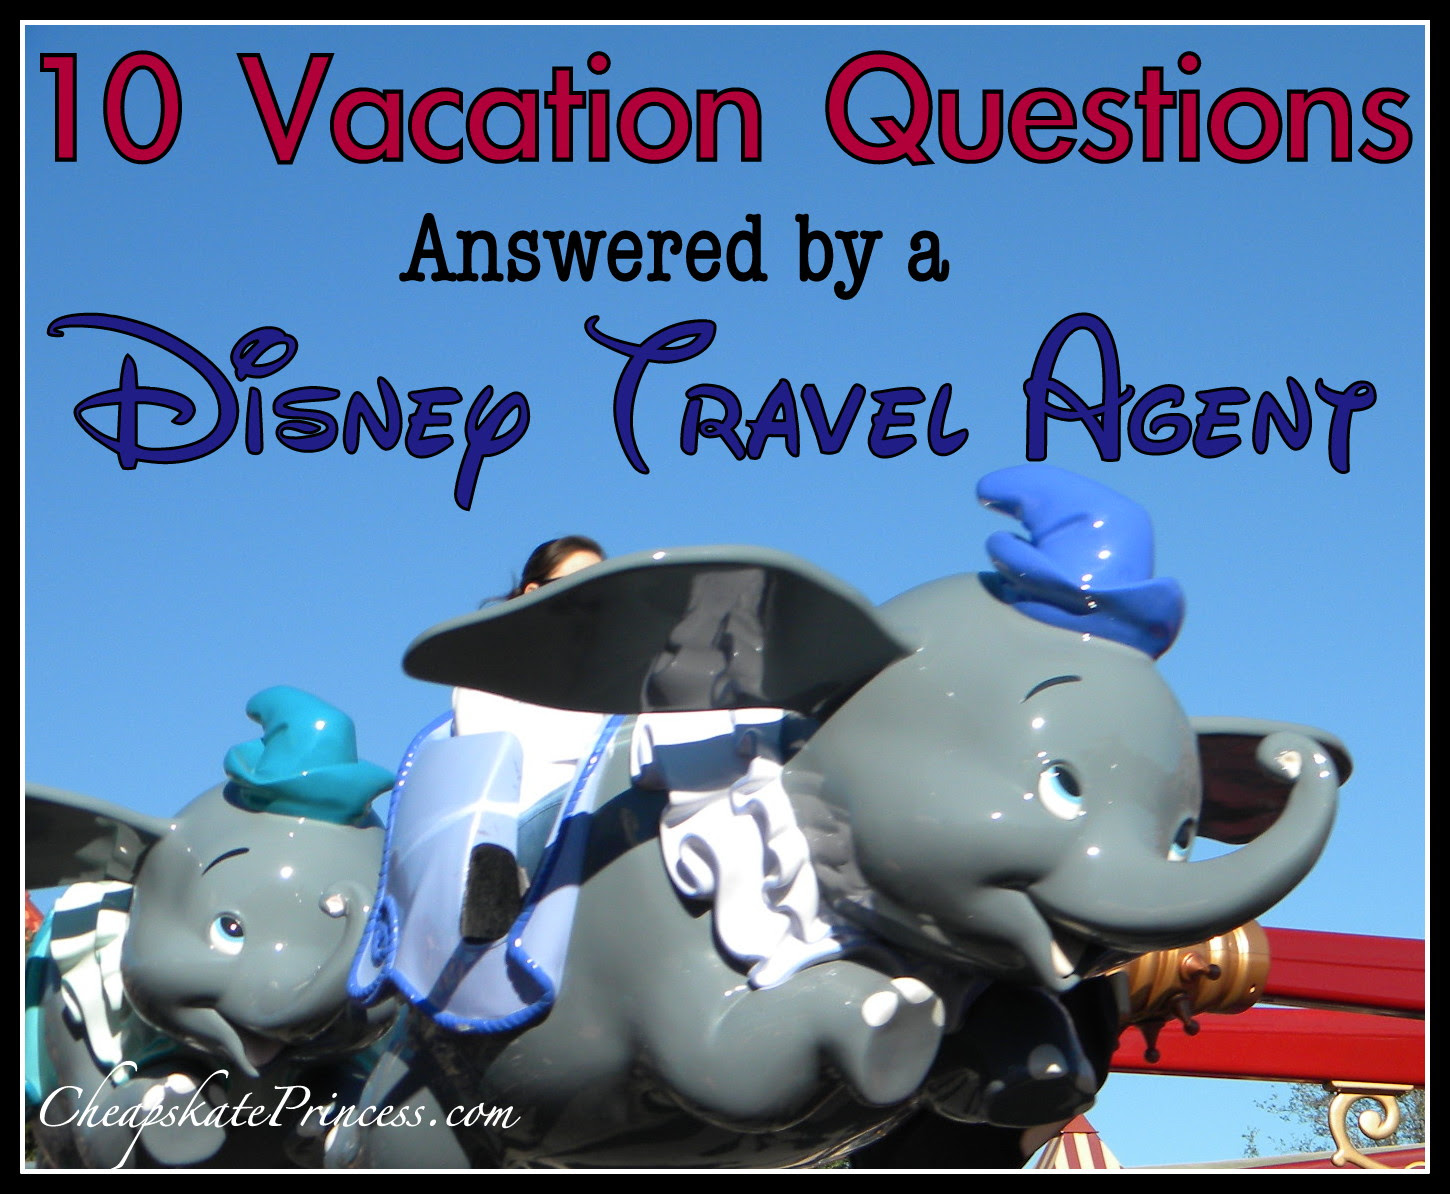 10 Vacation Questions Answered by a Disney Travel Agent